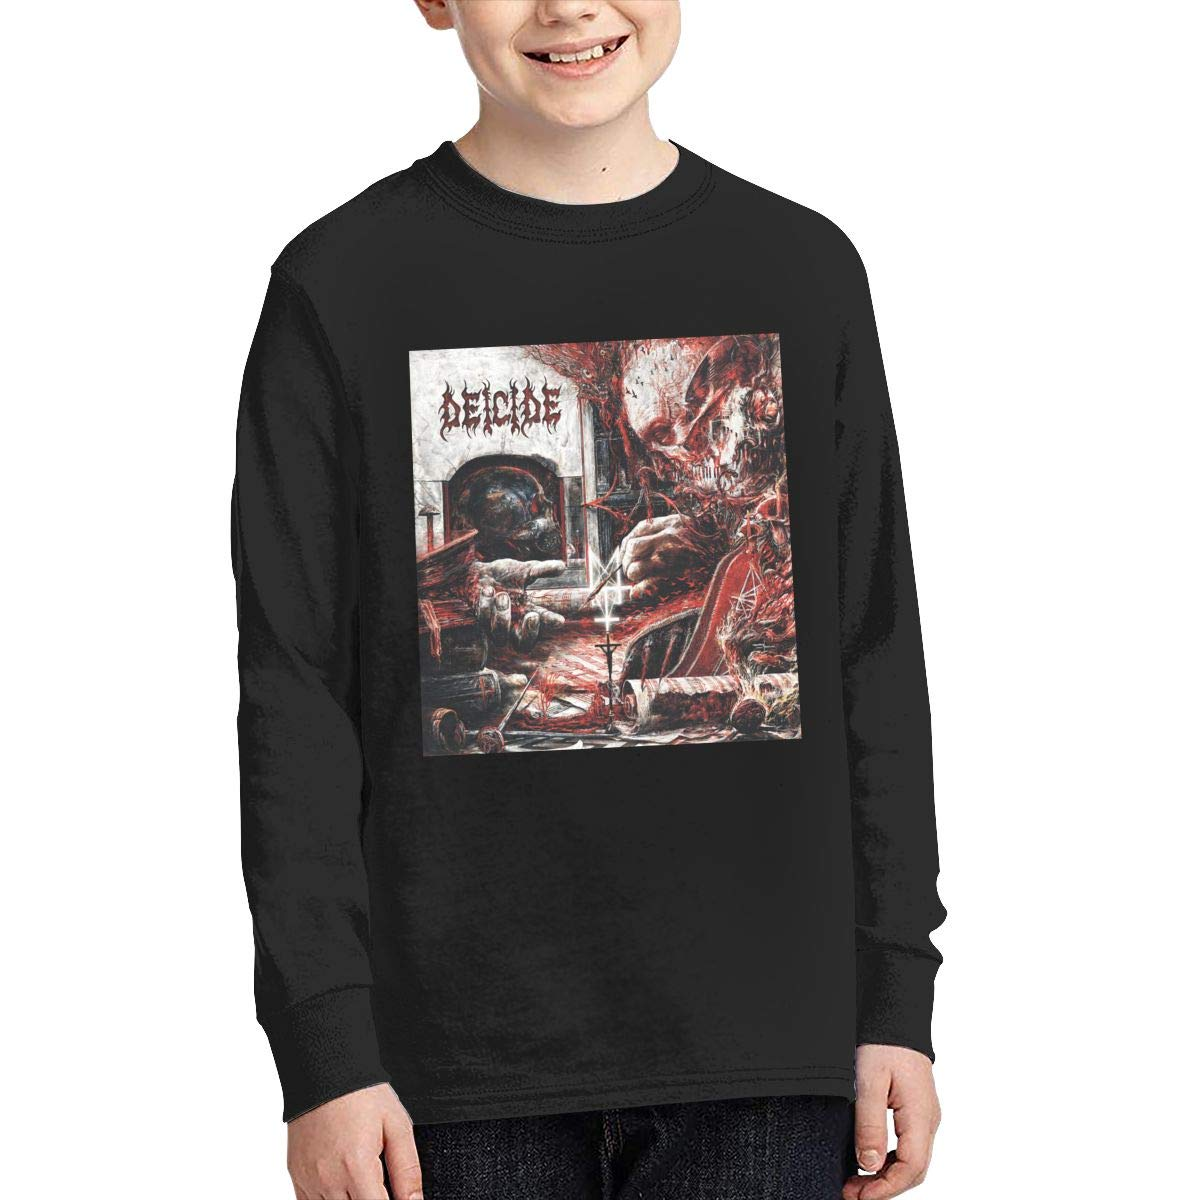 MichaelHazzard Deicide Youth Soft Long Sleeve Crewneck Tee T-Shirt for Boys and Girls